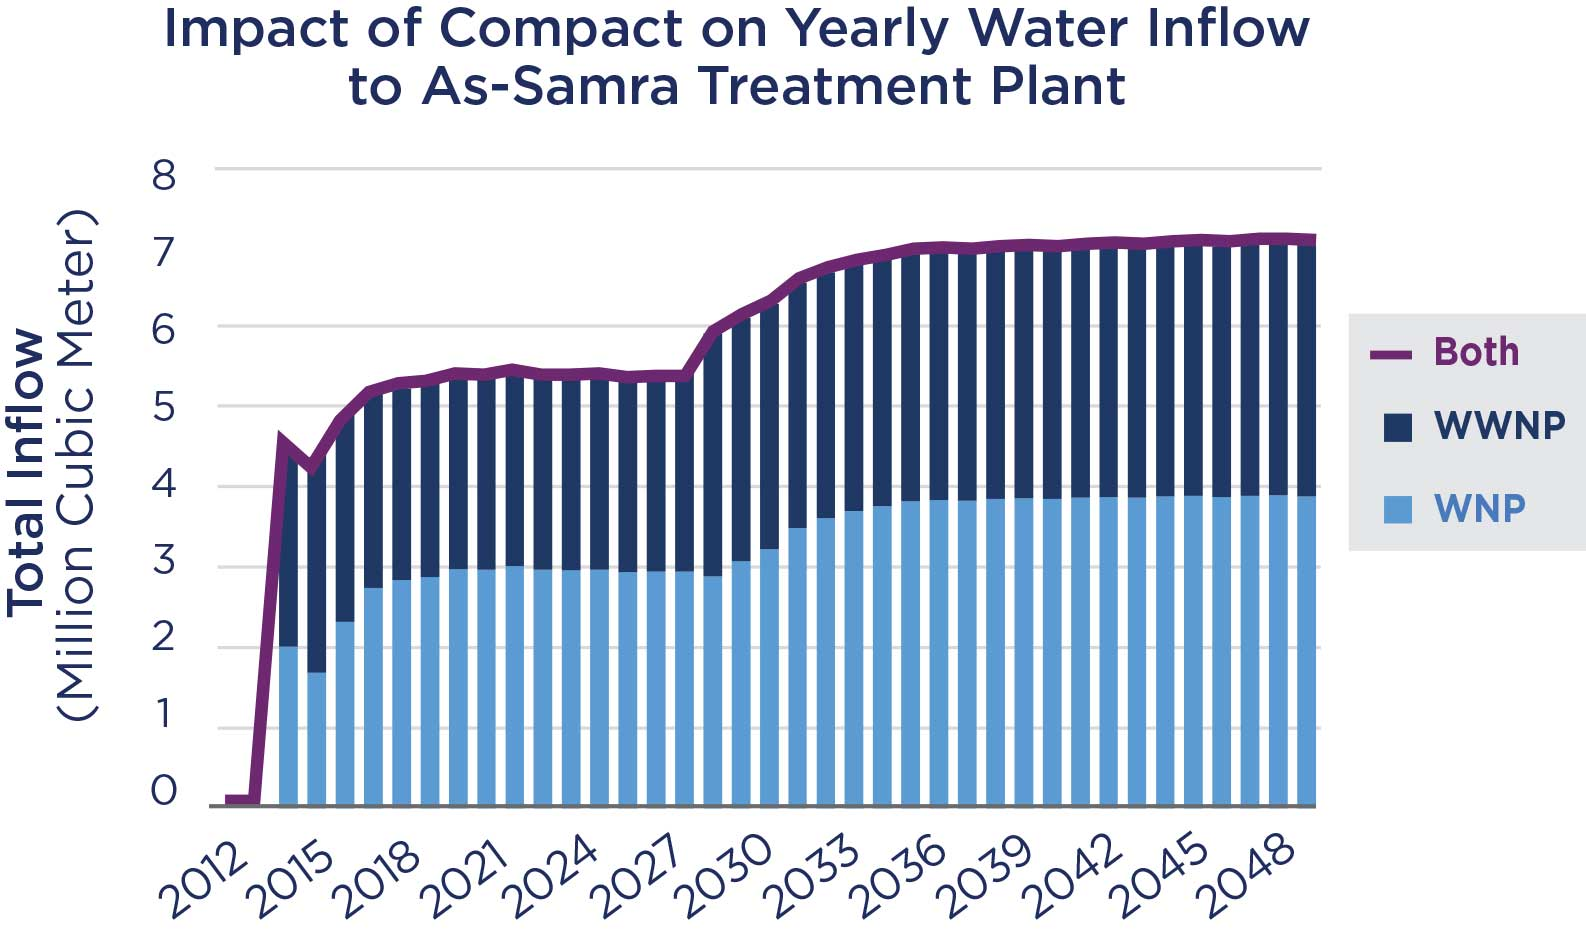 Impact of Compact on Yearly Water Inflow to As-Samra Treatment Plant.